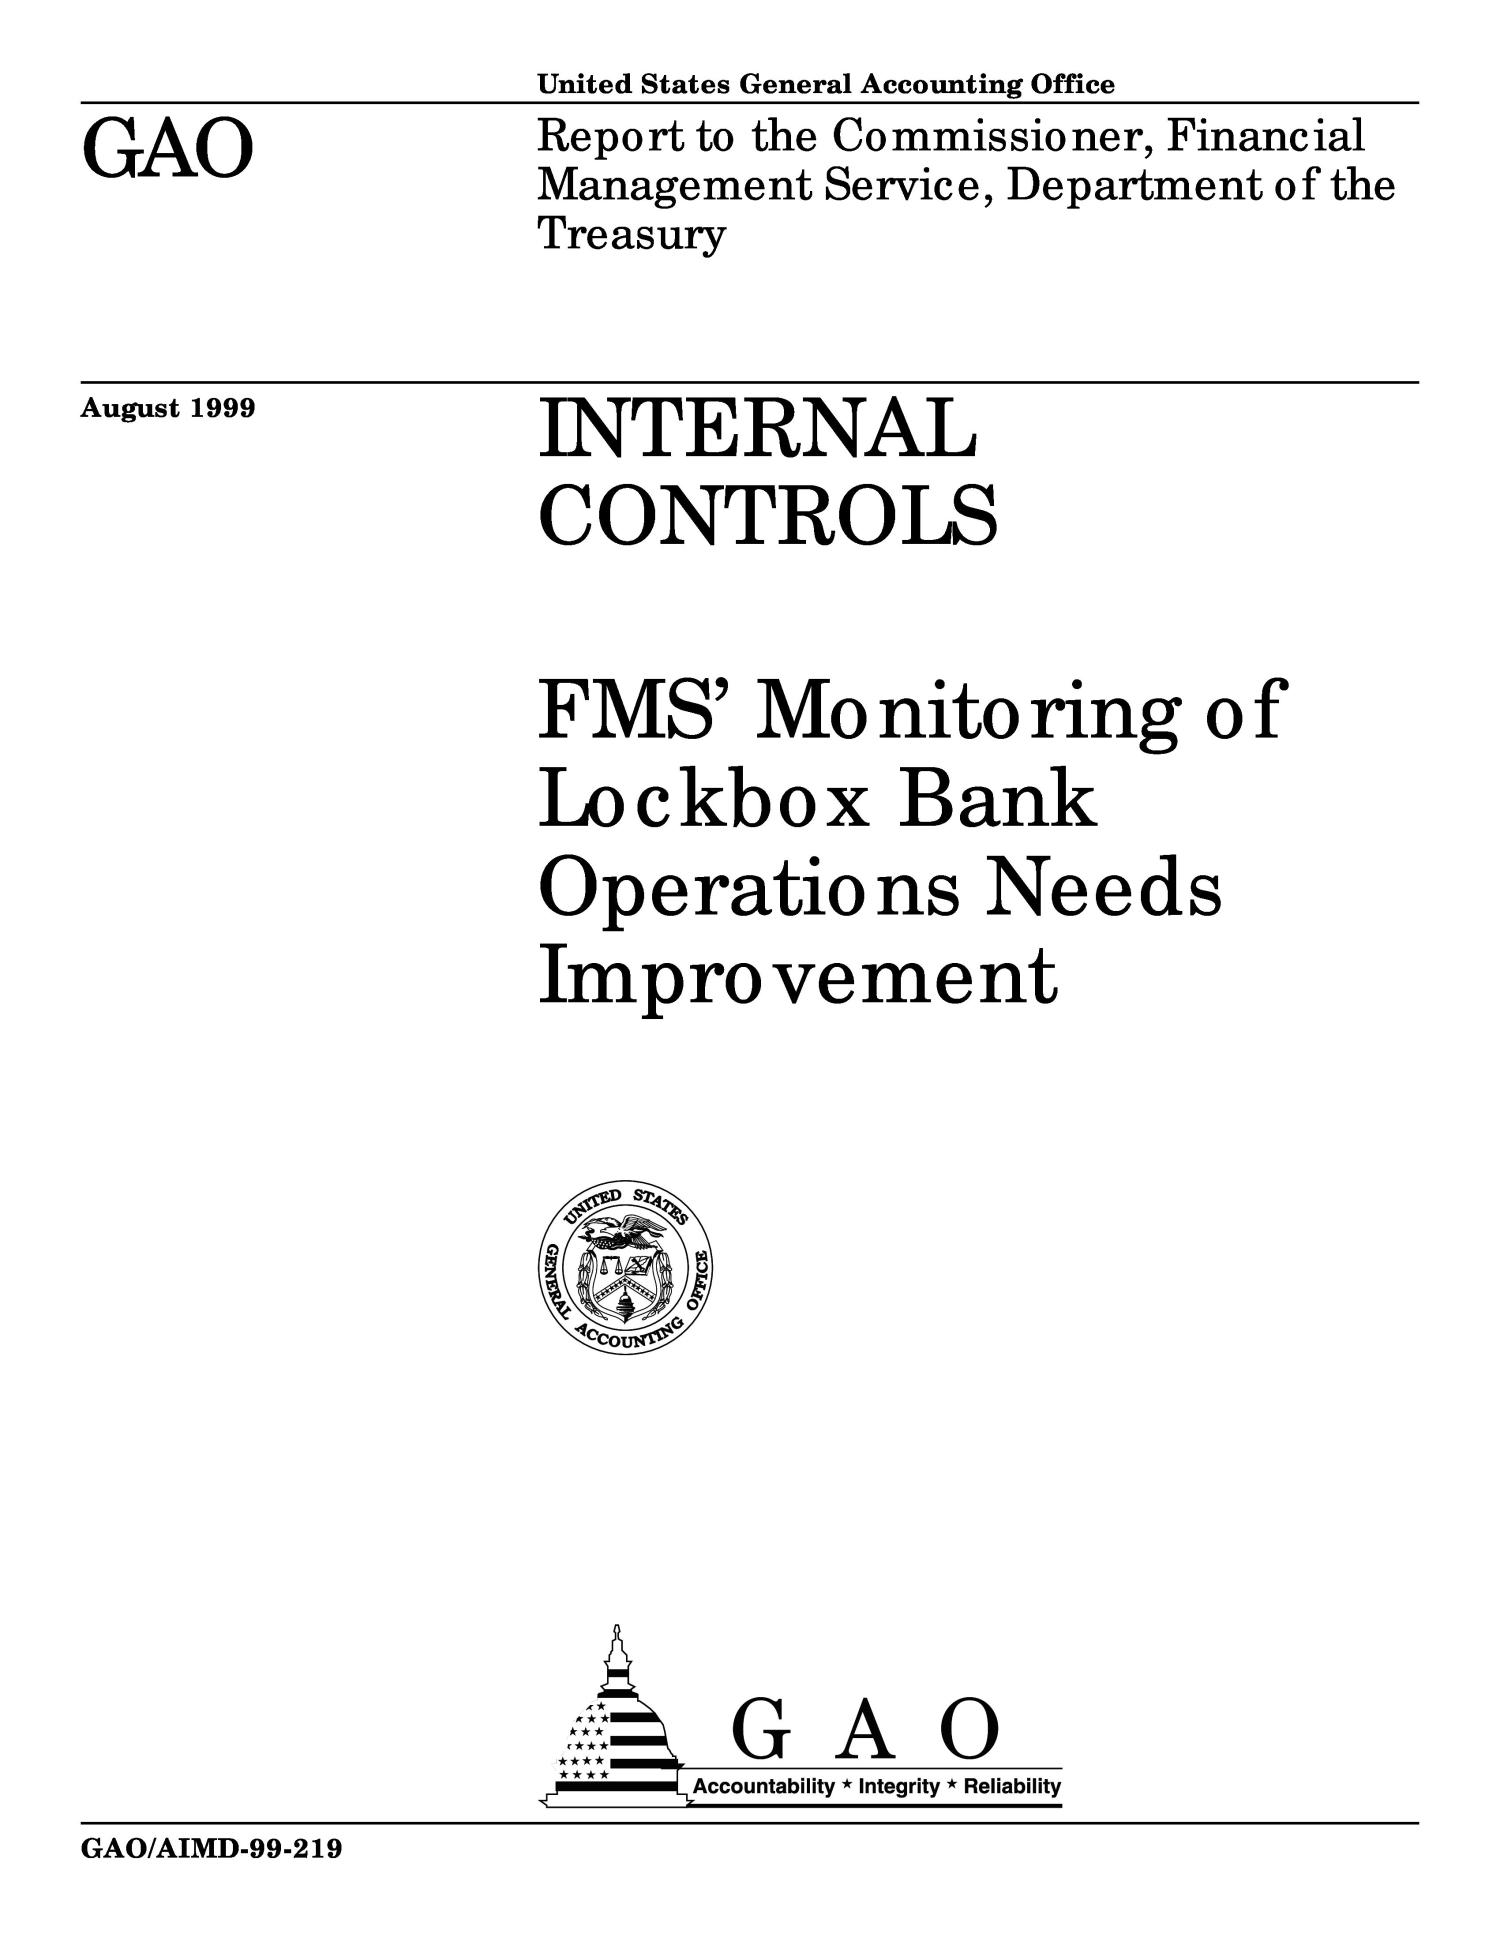 Internal Controls: FMS' Monitoring of Lockbox Bank Operations Needs Improvement                                                                                                      [Sequence #]: 1 of 16